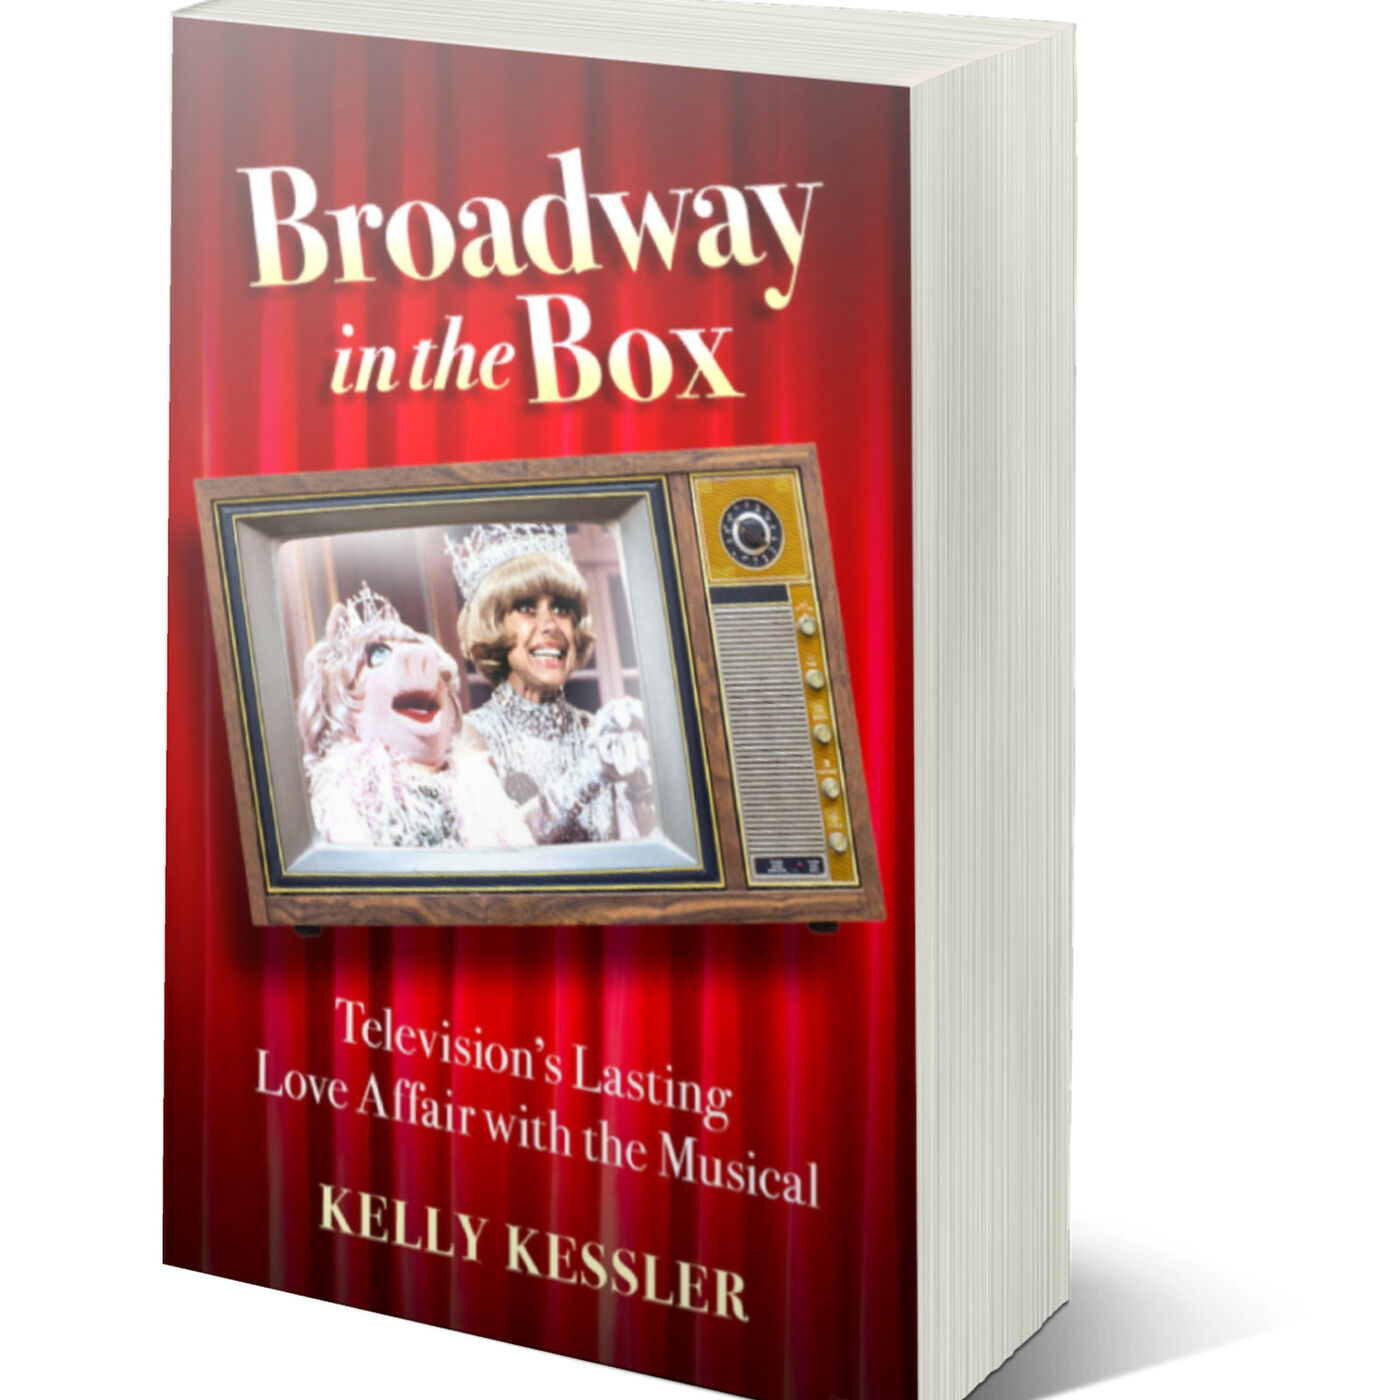 Broadway in the Box with Kelly Kessler